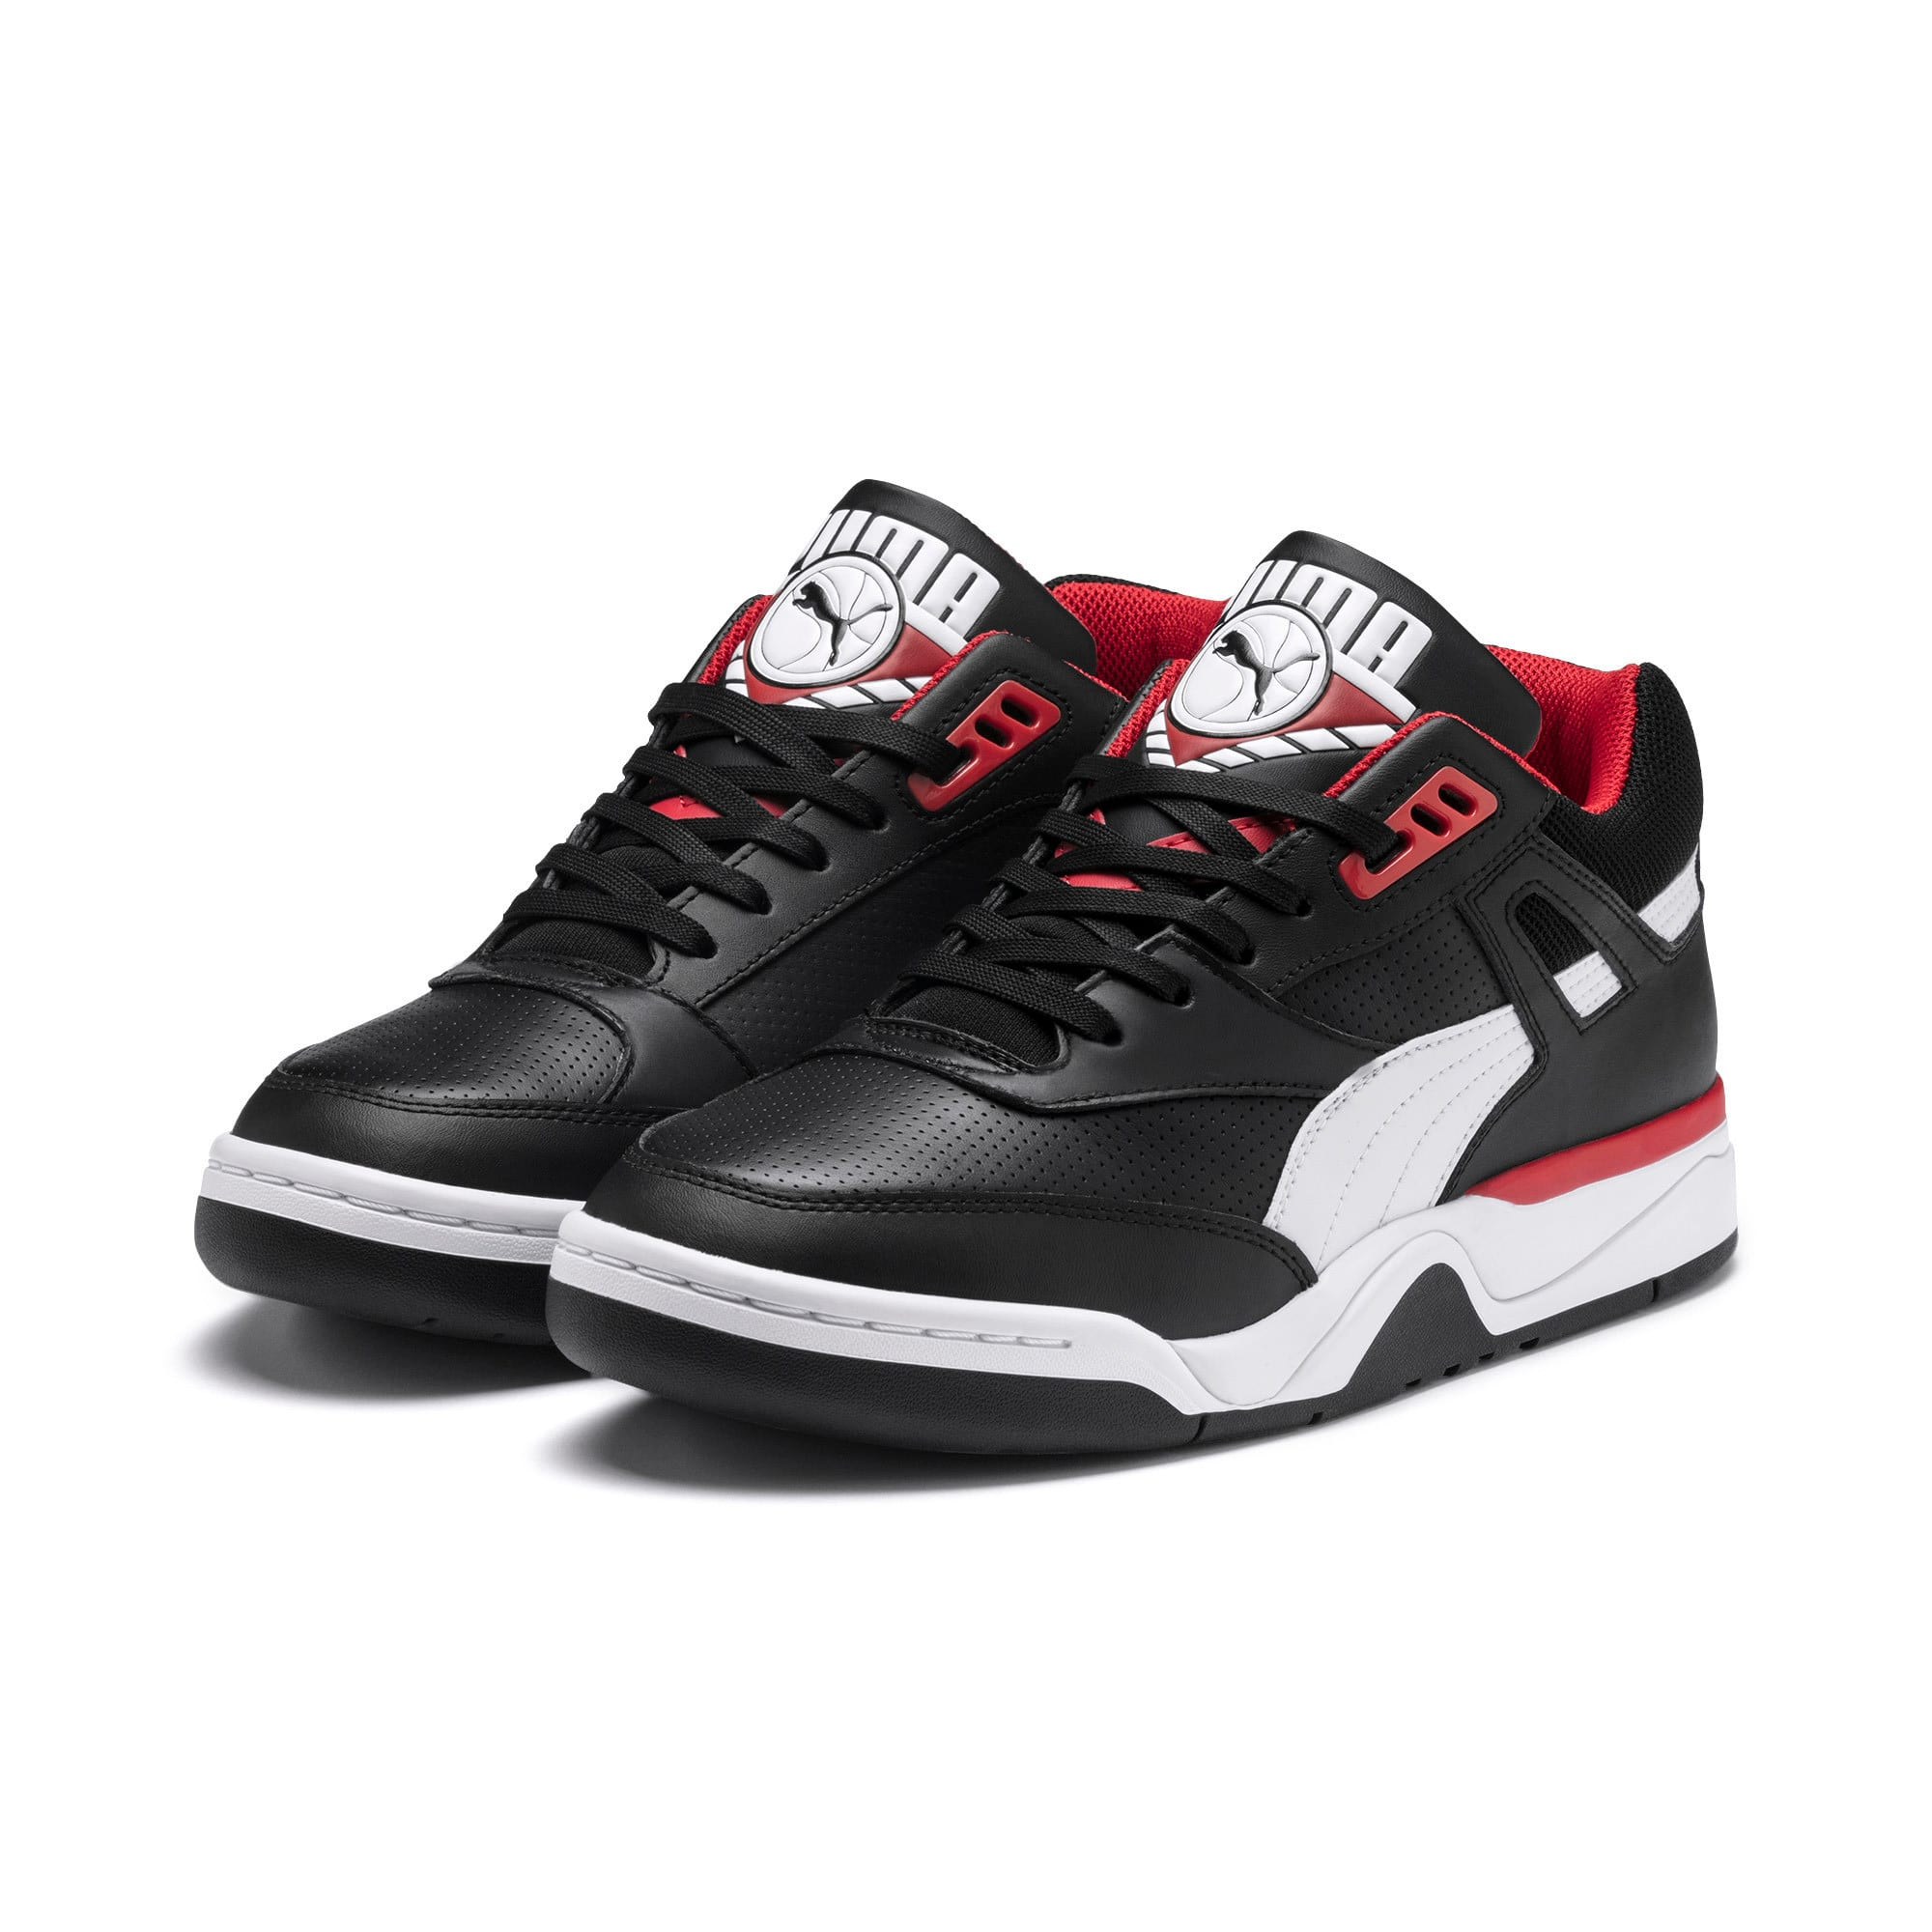 Thumbnail 2 of Palace Guard Men's Basketball Trainers, Puma Black-Puma White-red, medium